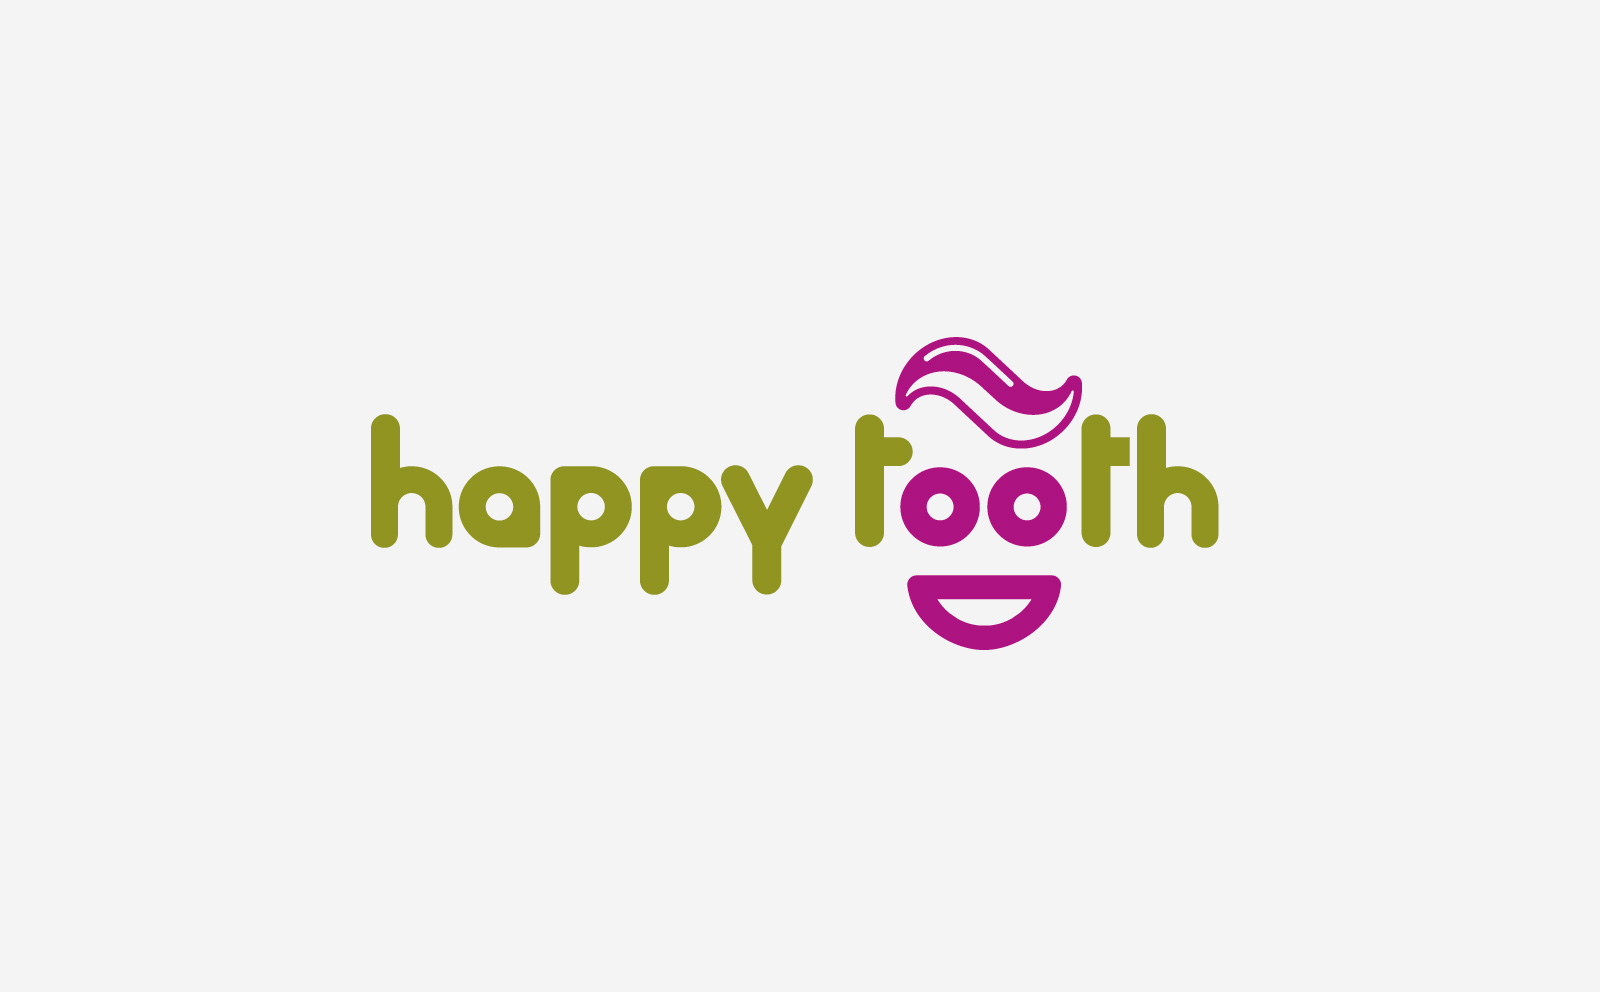 happy tooth logo